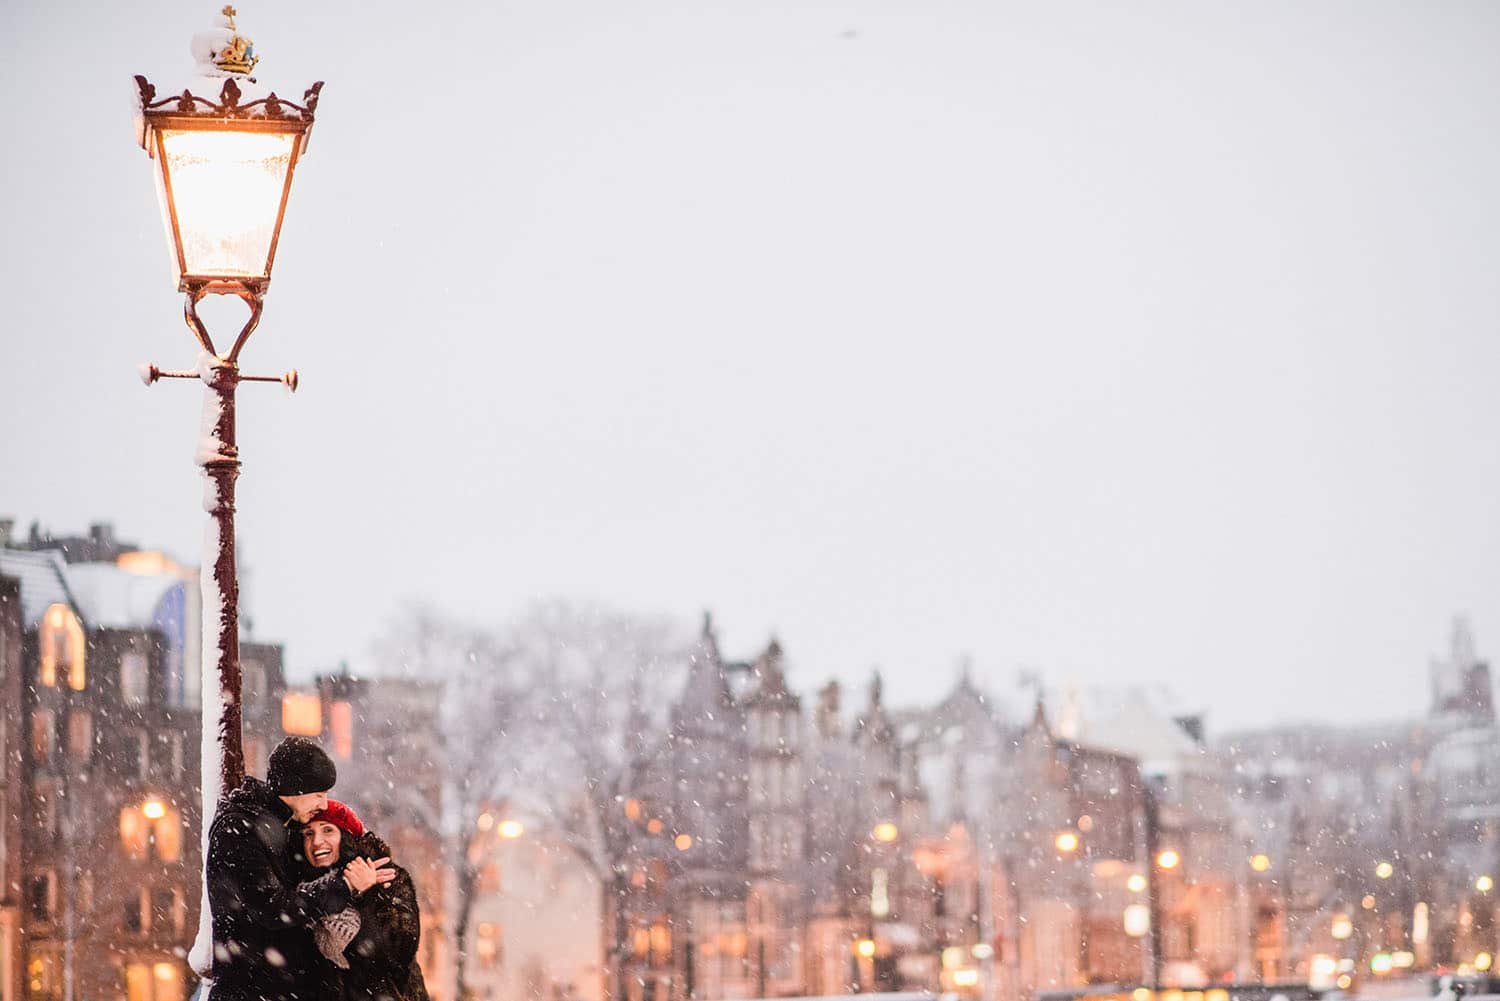 couple embracing under lamppost in snow